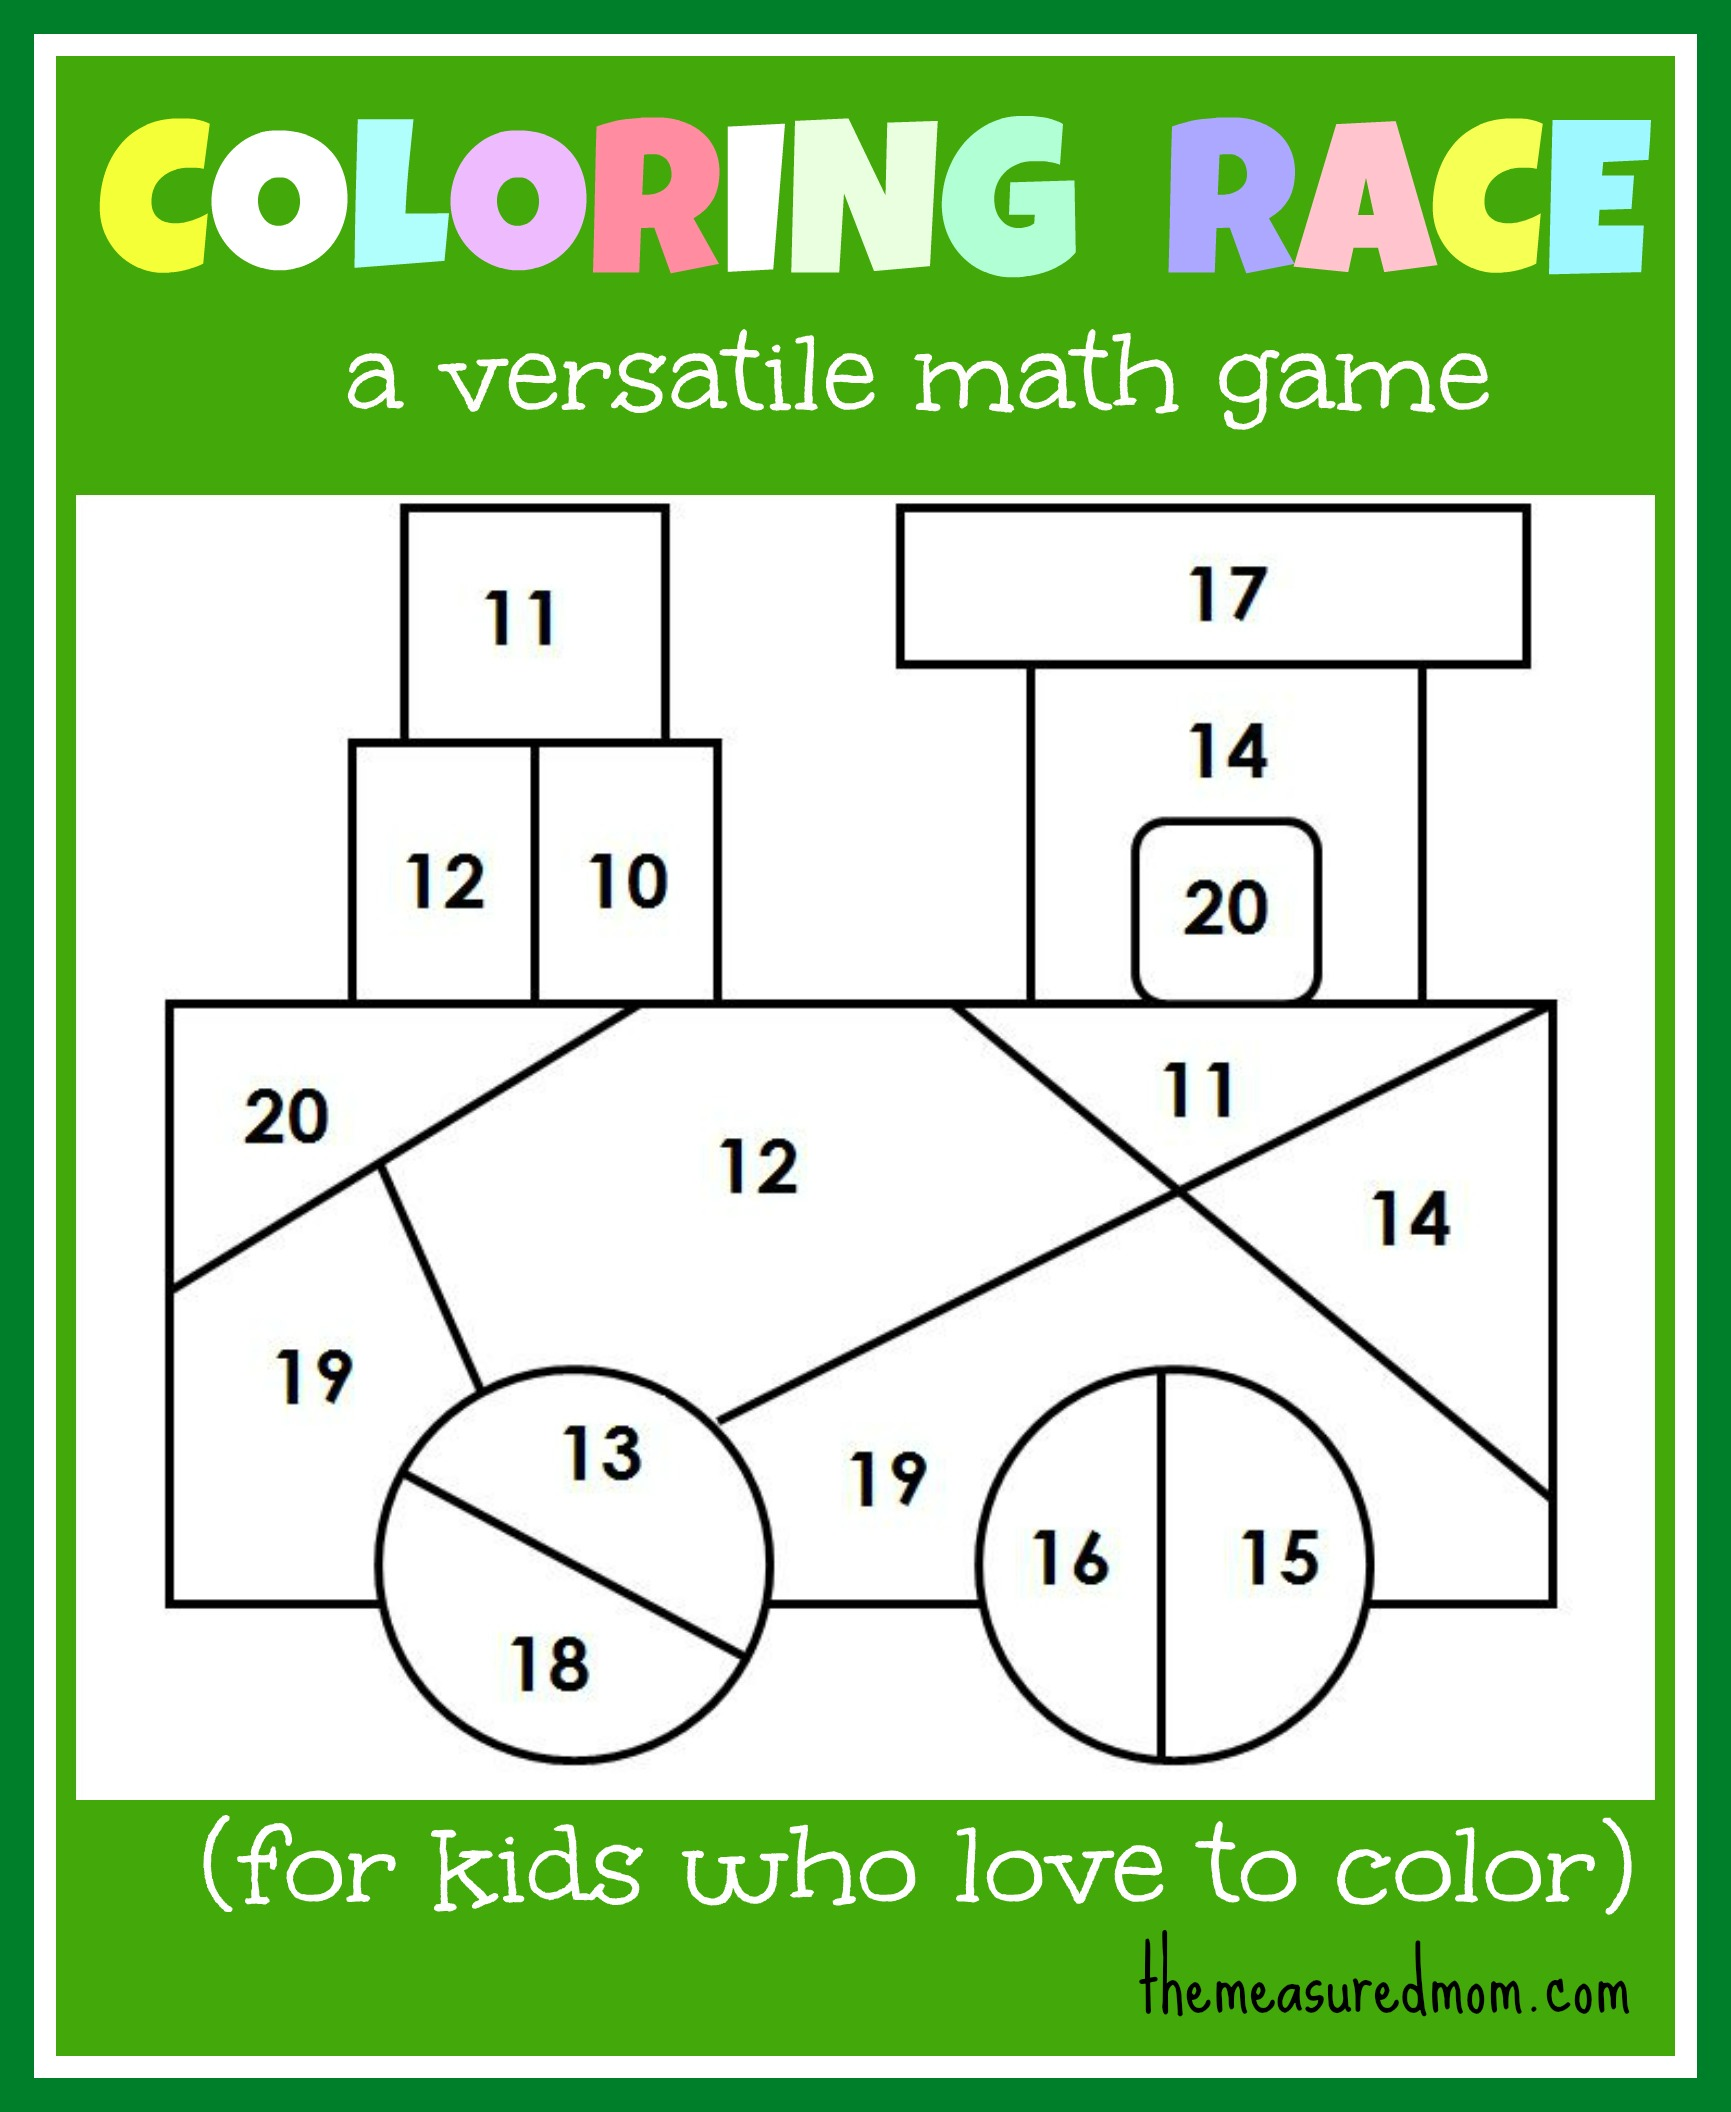 Math Game For Kids Coloring Race Combines Math And Coloring